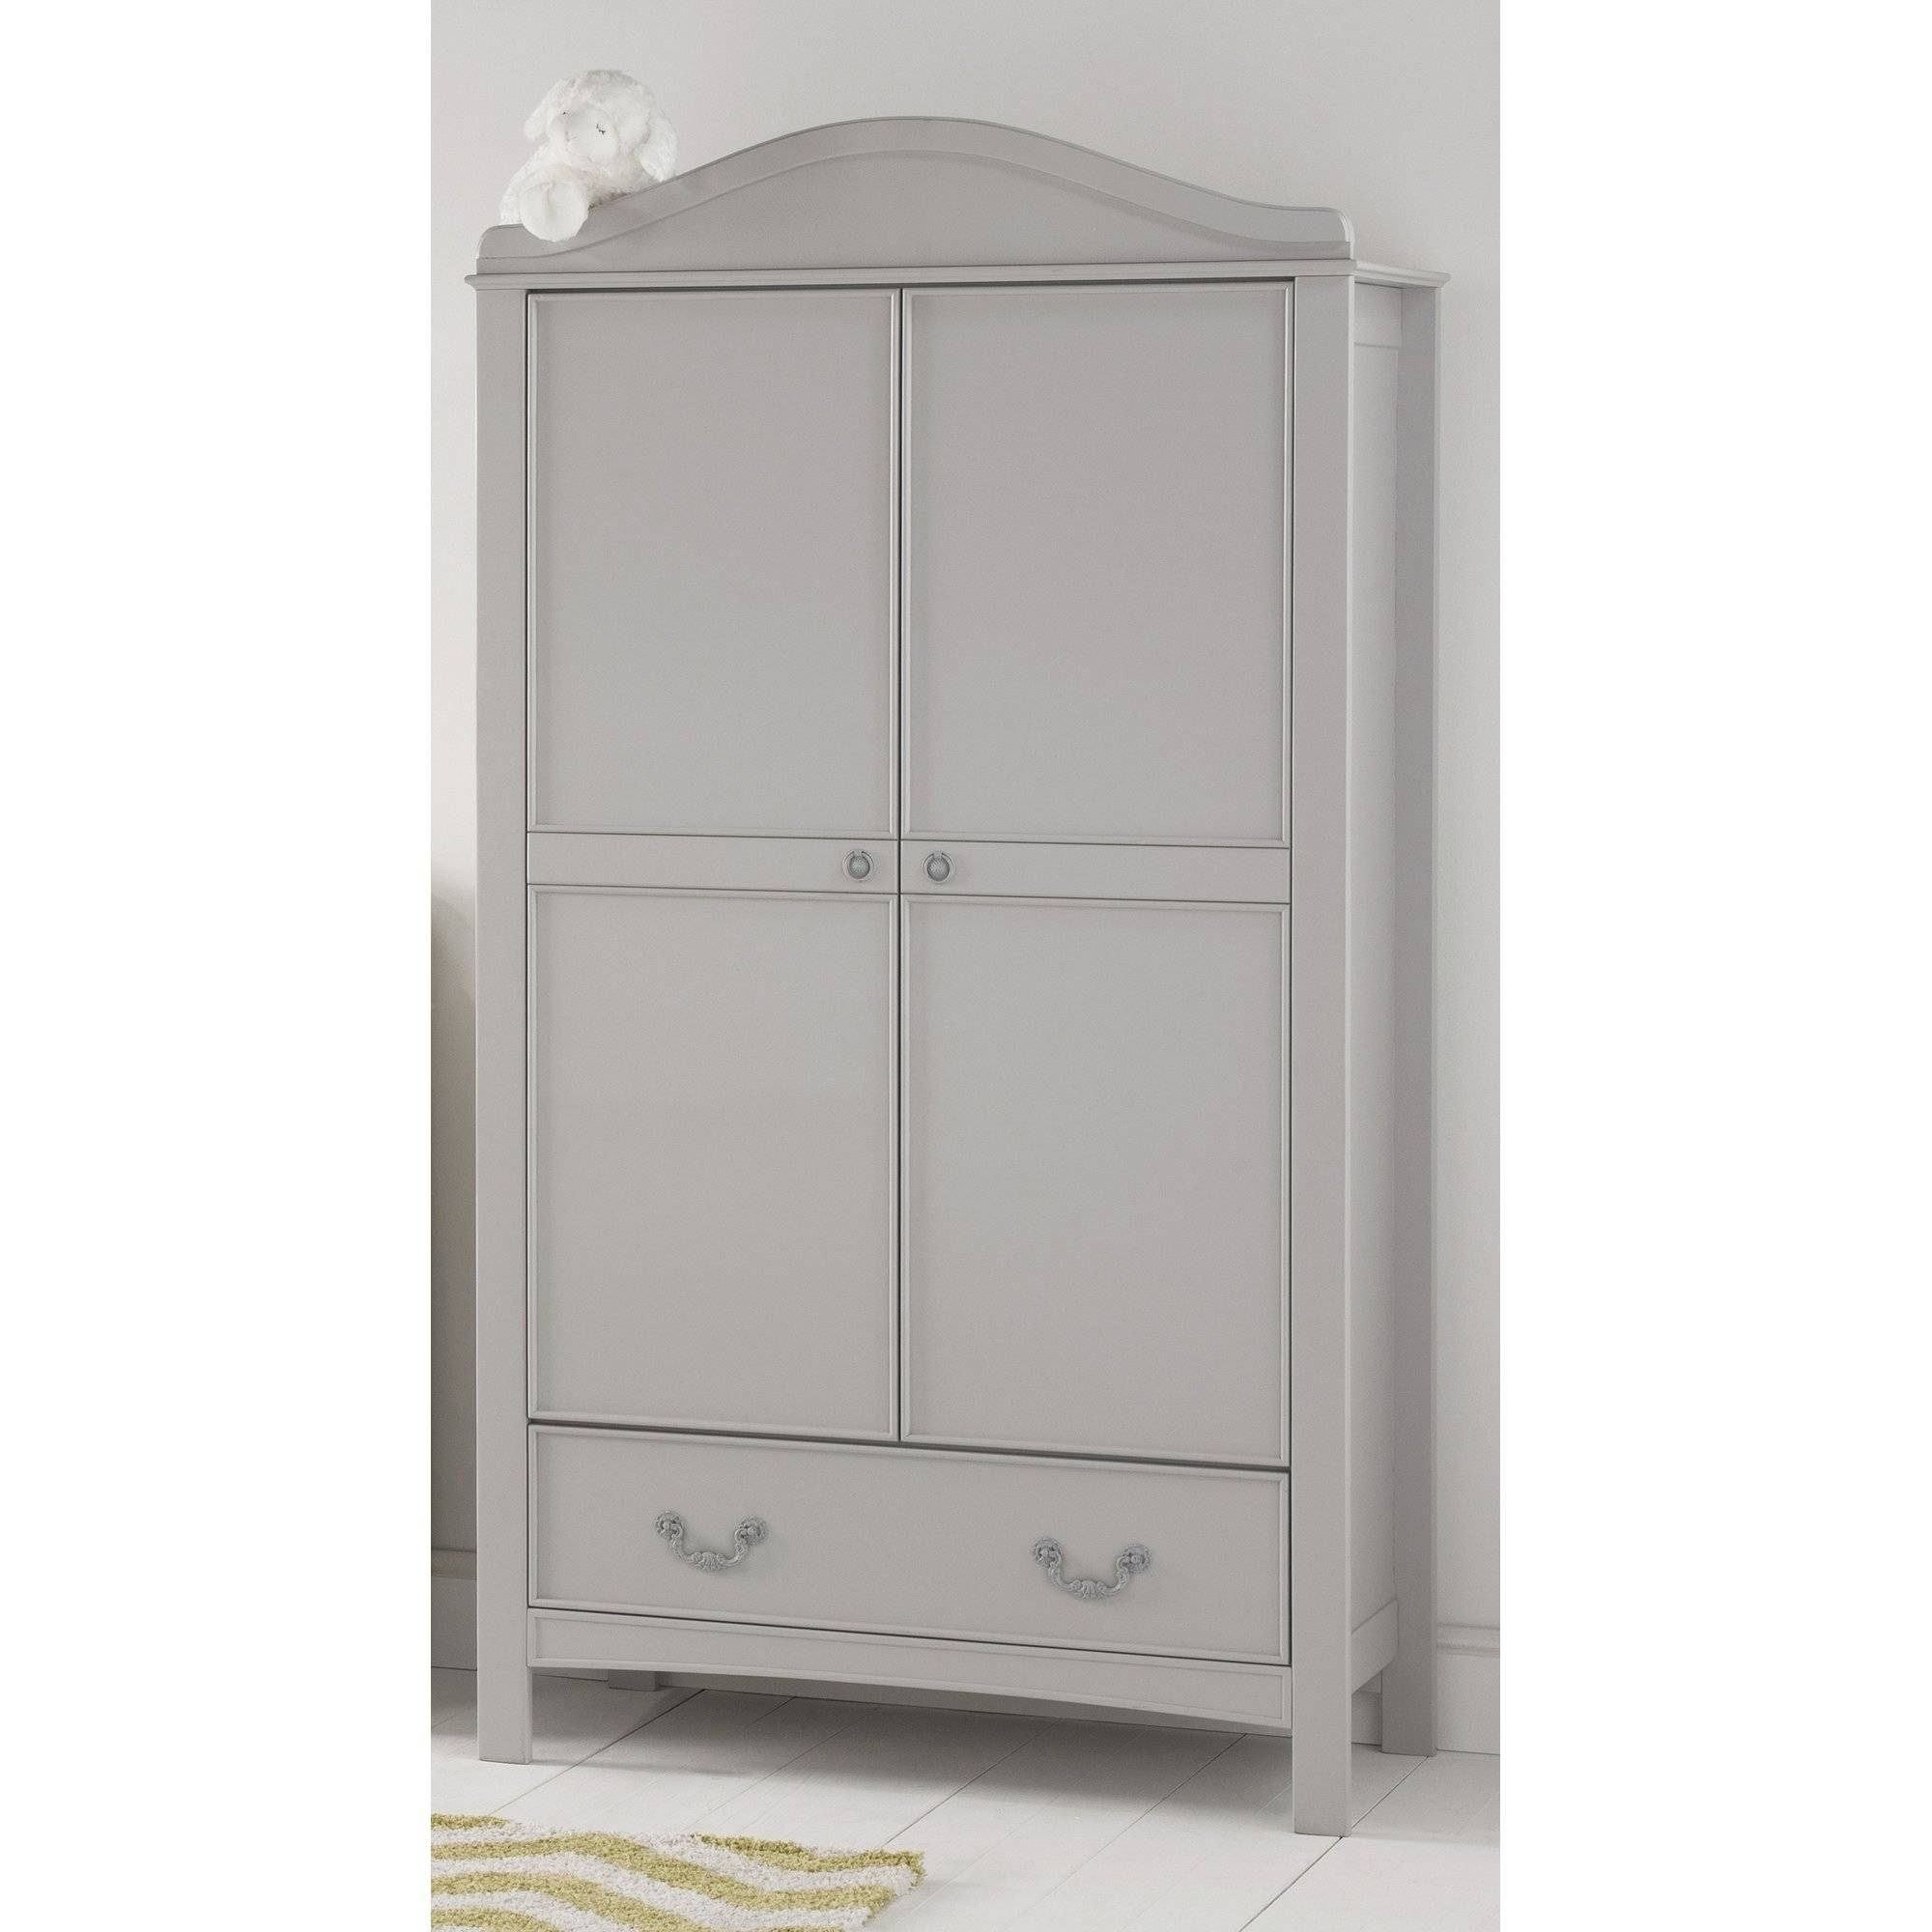 White Wardrobe Uk. Thumbnail 1 Thumbnail 1 Thumbnail 1. Kingston within Single White Wardrobes With Drawers (Image 15 of 15)